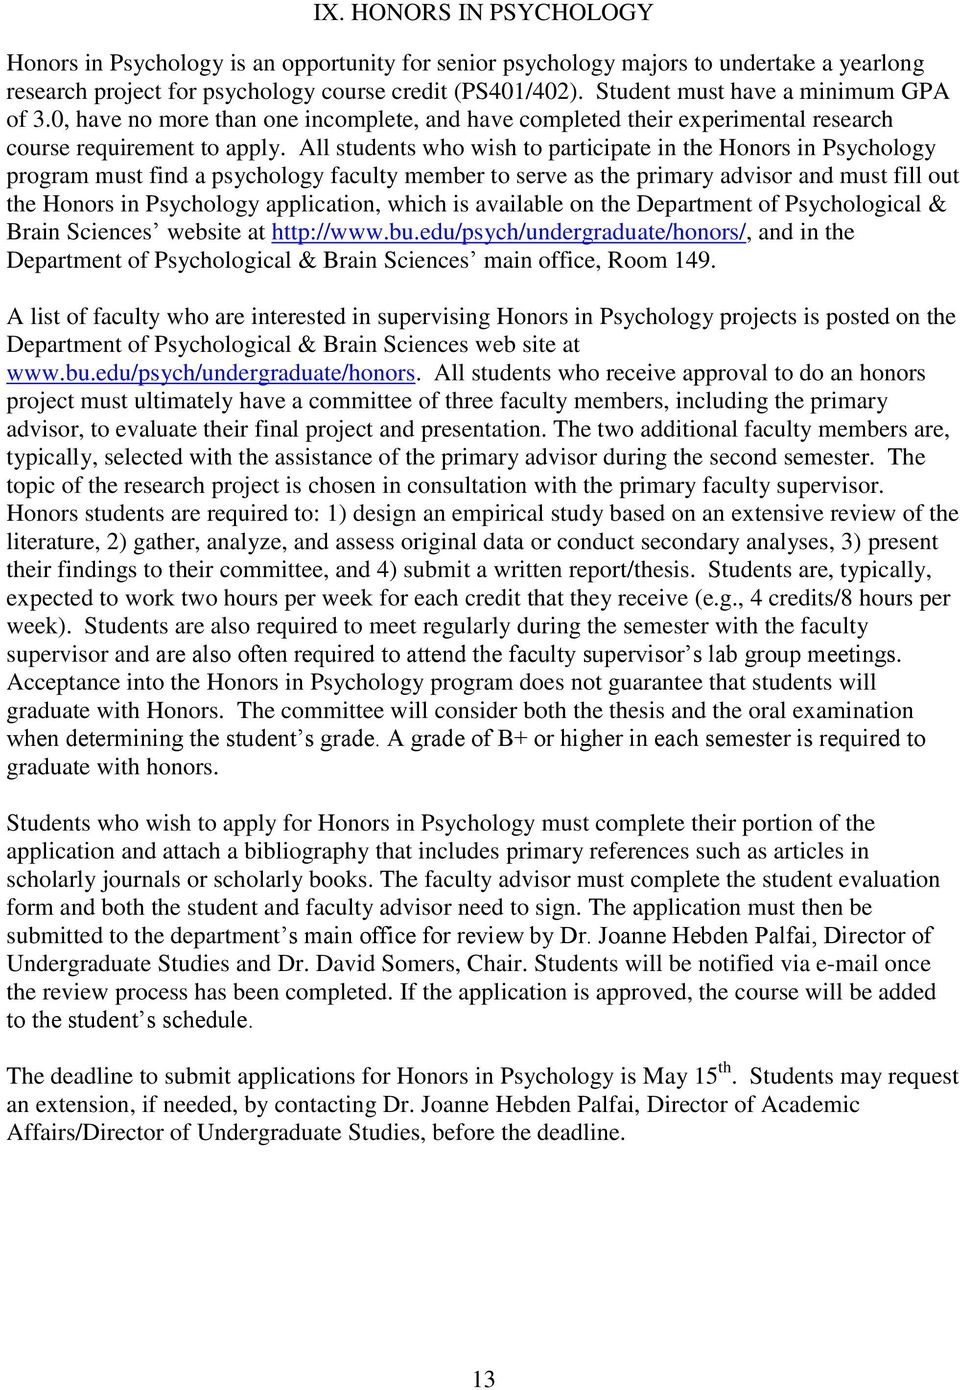 All students who wish to participate in the Honors in Psychology program must find a psychology faculty member to serve as the primary advisor and must fill out the Honors in Psychology application,